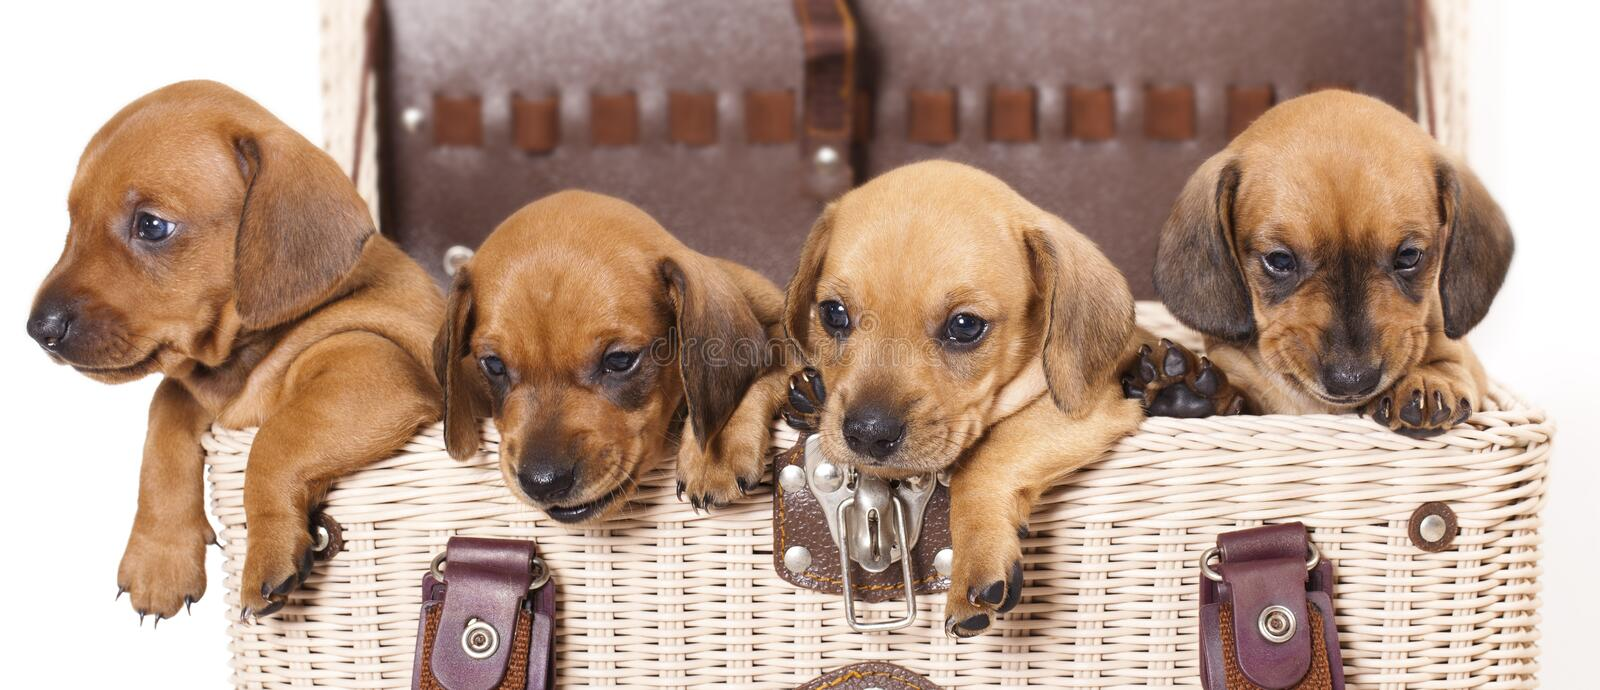 dachshund Puppies royalty free stock photos